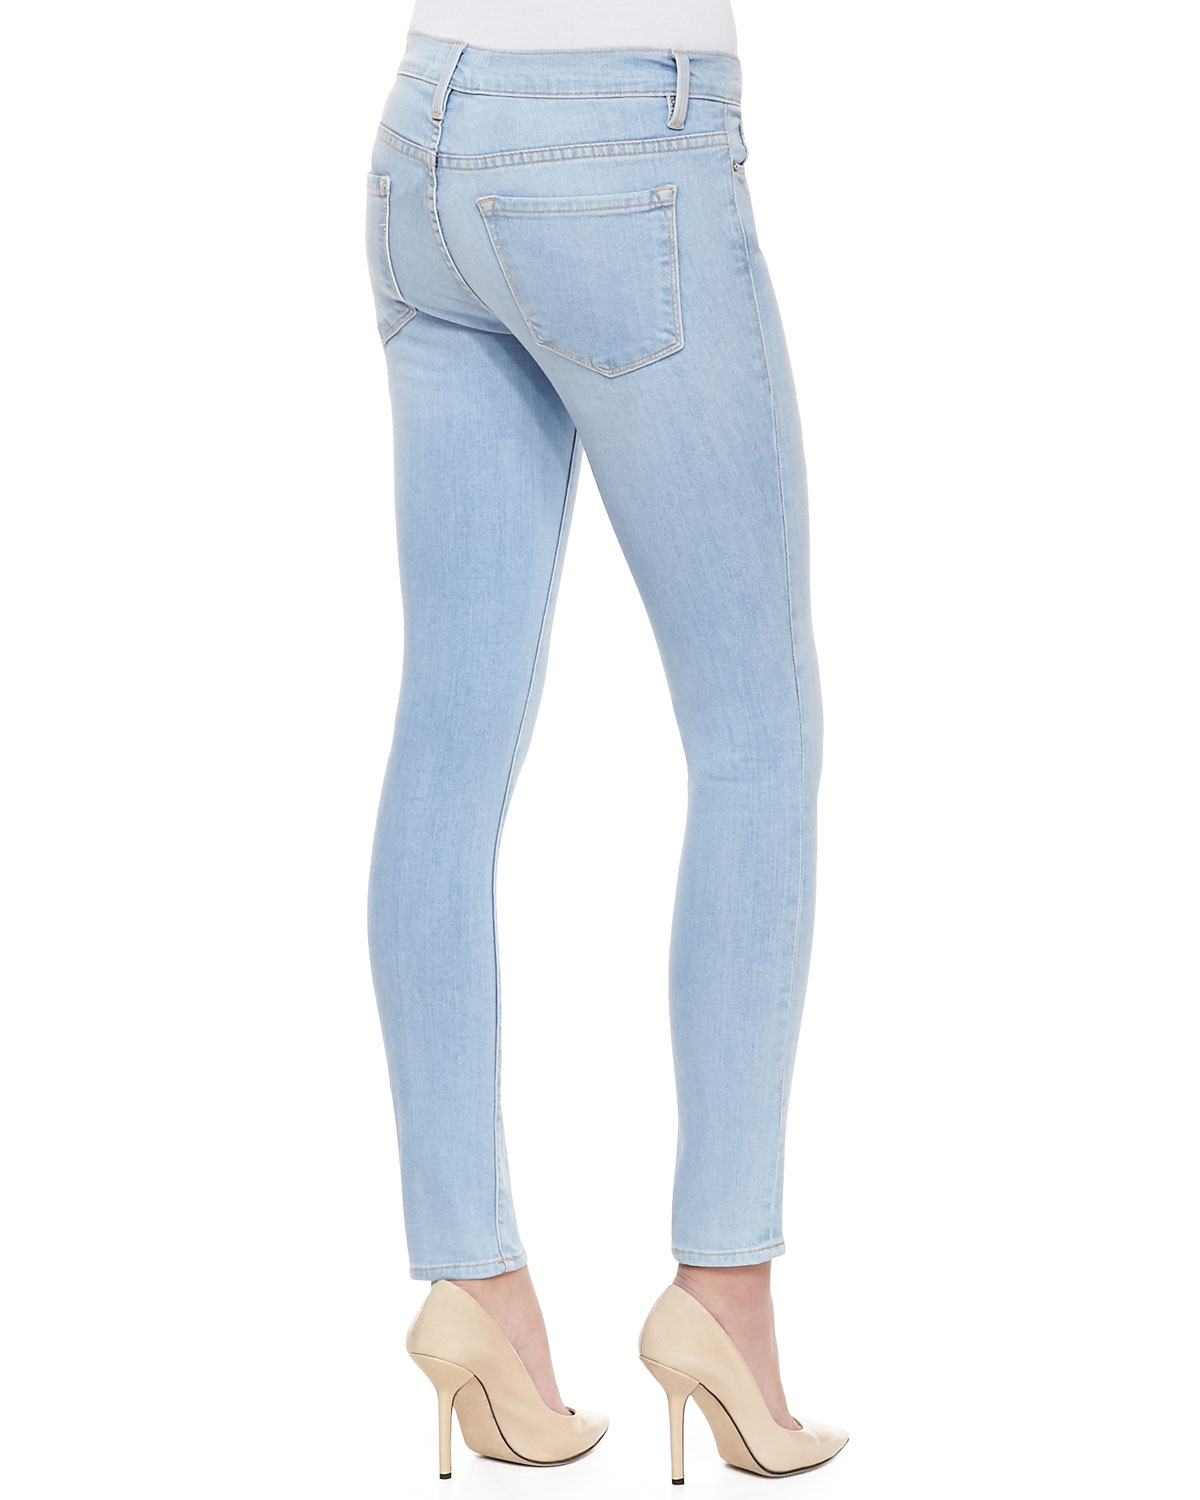 Womens Light Wash Skinny Jeans - Jeans Am